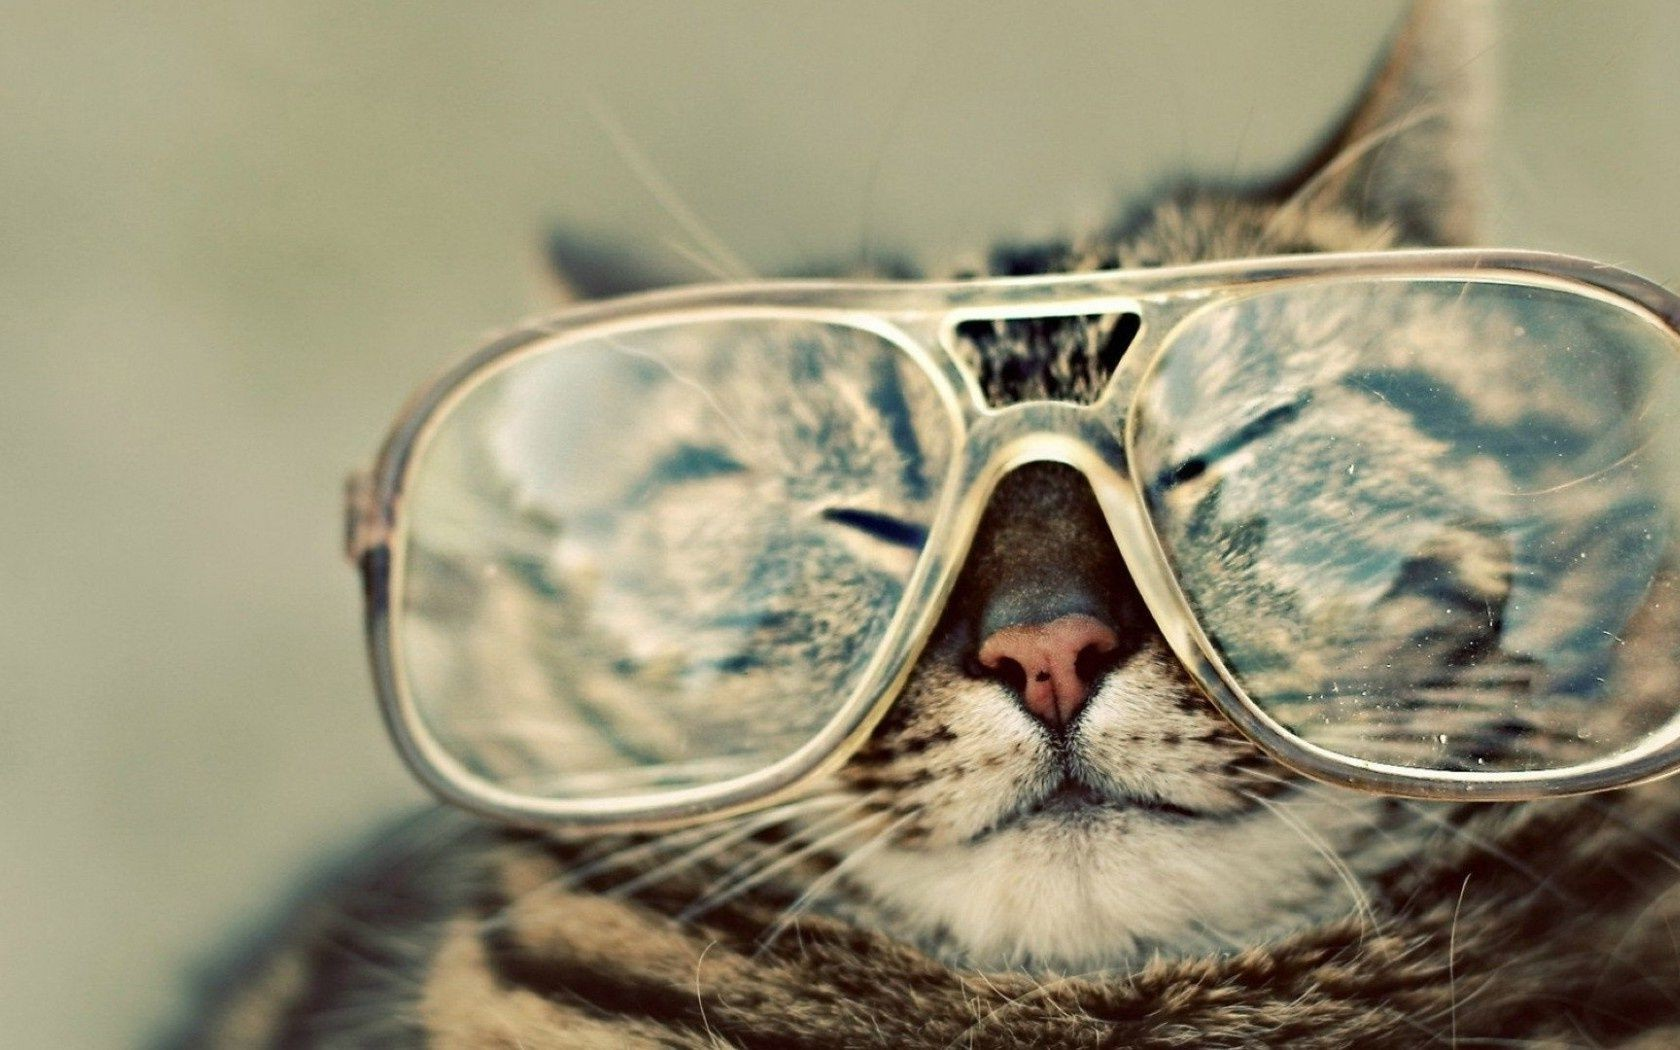 Muzzle Cat Glasses IPhone Wallpapers For Free